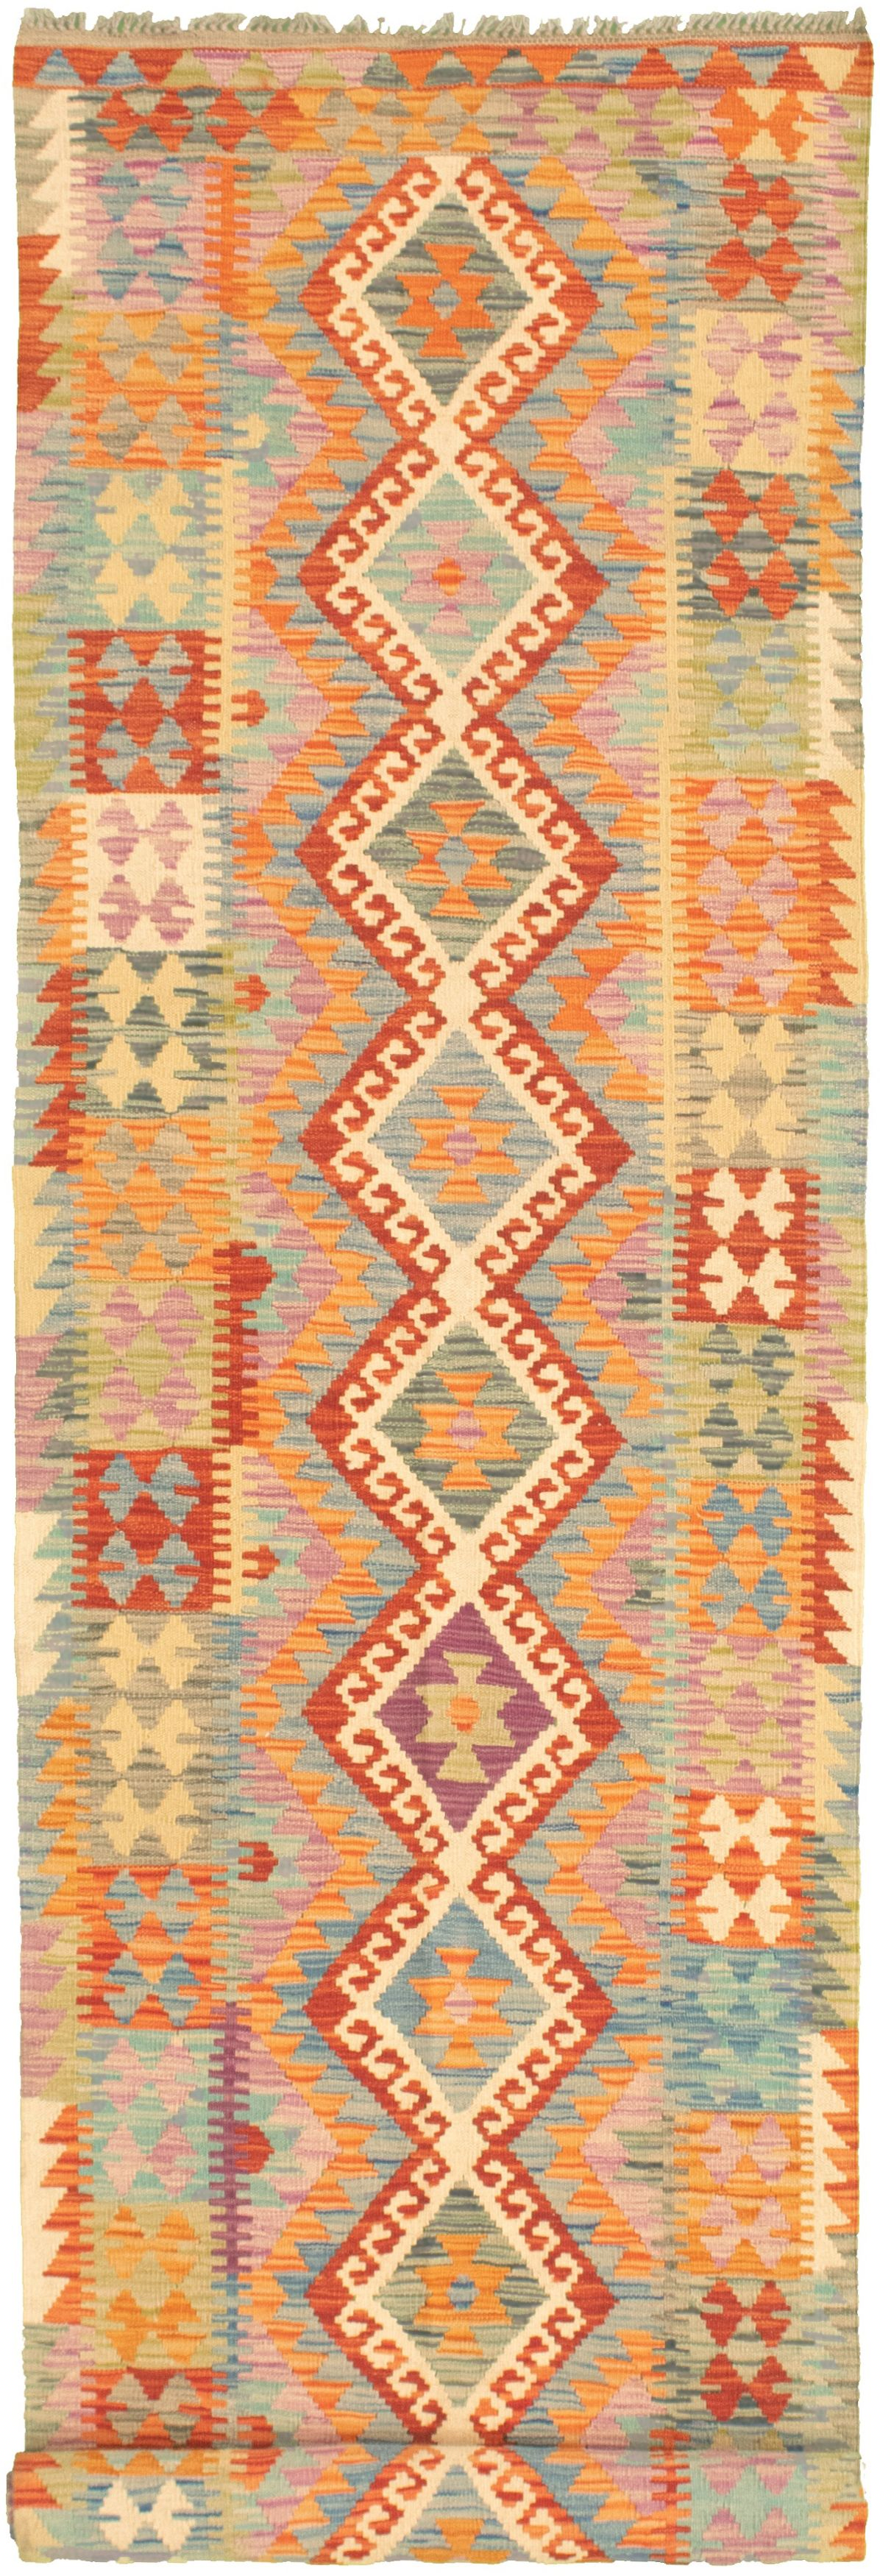 """Hand woven Bold and Colorful  Dark Copper, Light Blue  Wool Kilim 2'9"""" x 16'3"""" Size: 2'9"""" x 16'3"""""""